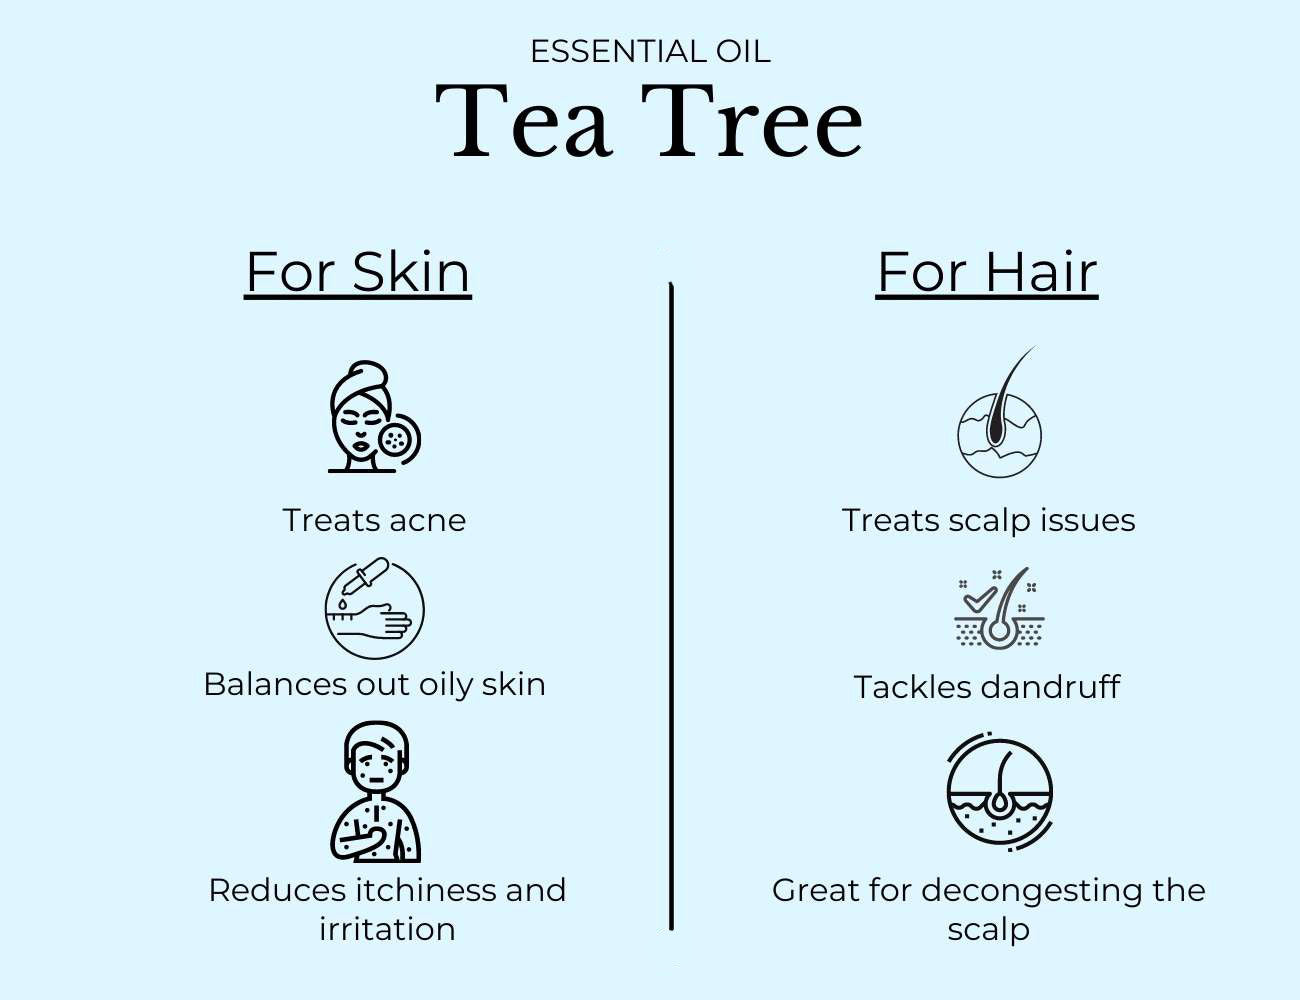 This image tells us about Tea Tree Oil and its uses.